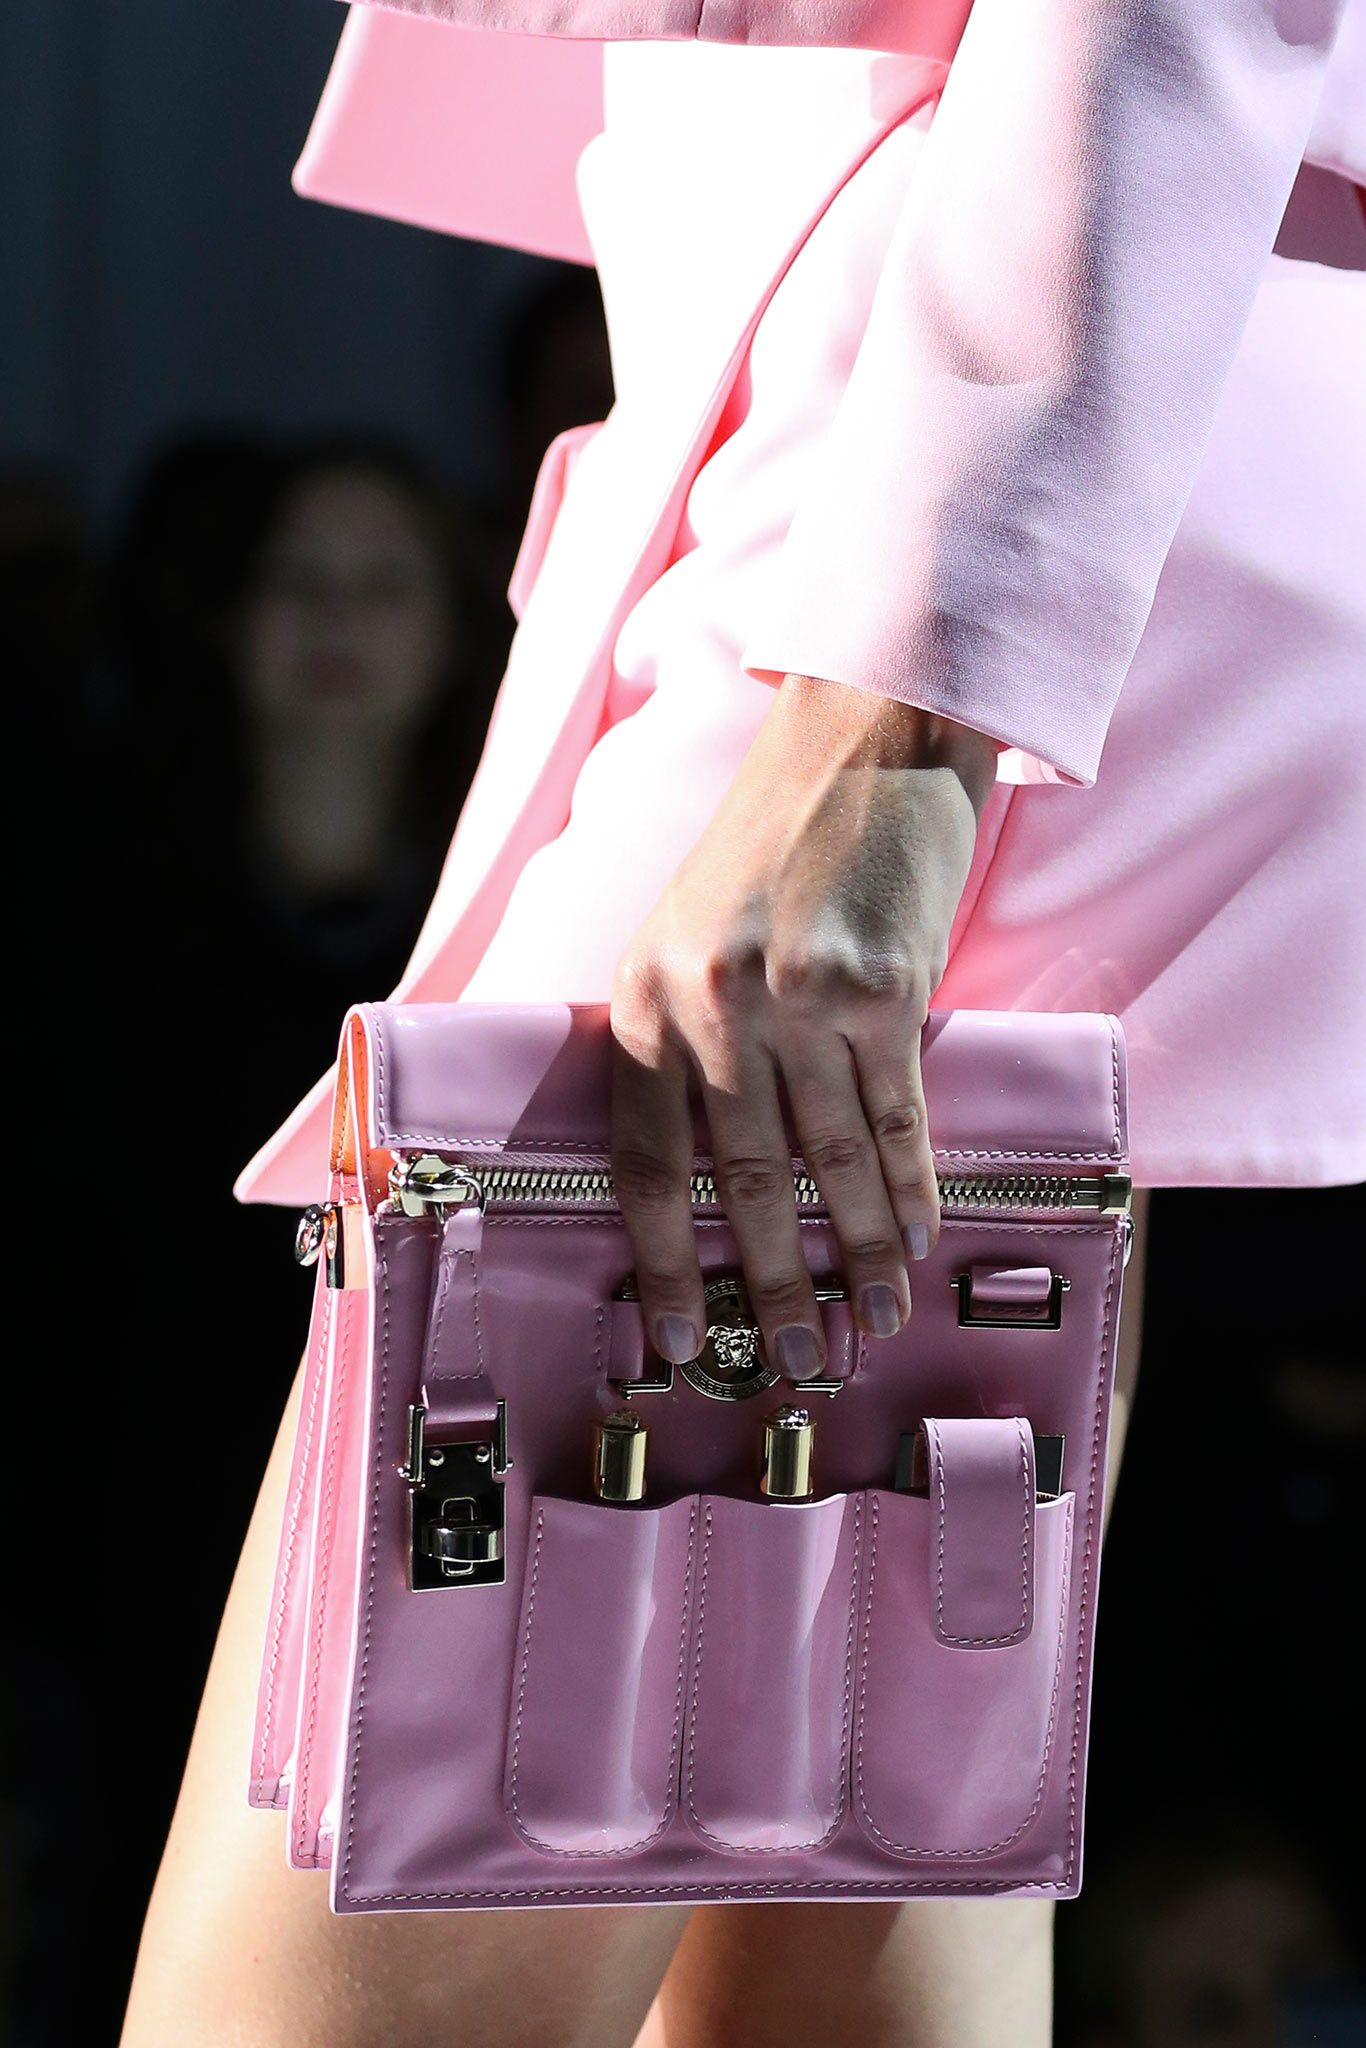 c6234a180b8 Spring 2015 Ready-to-Wear - Versace .. some great accessories in ...